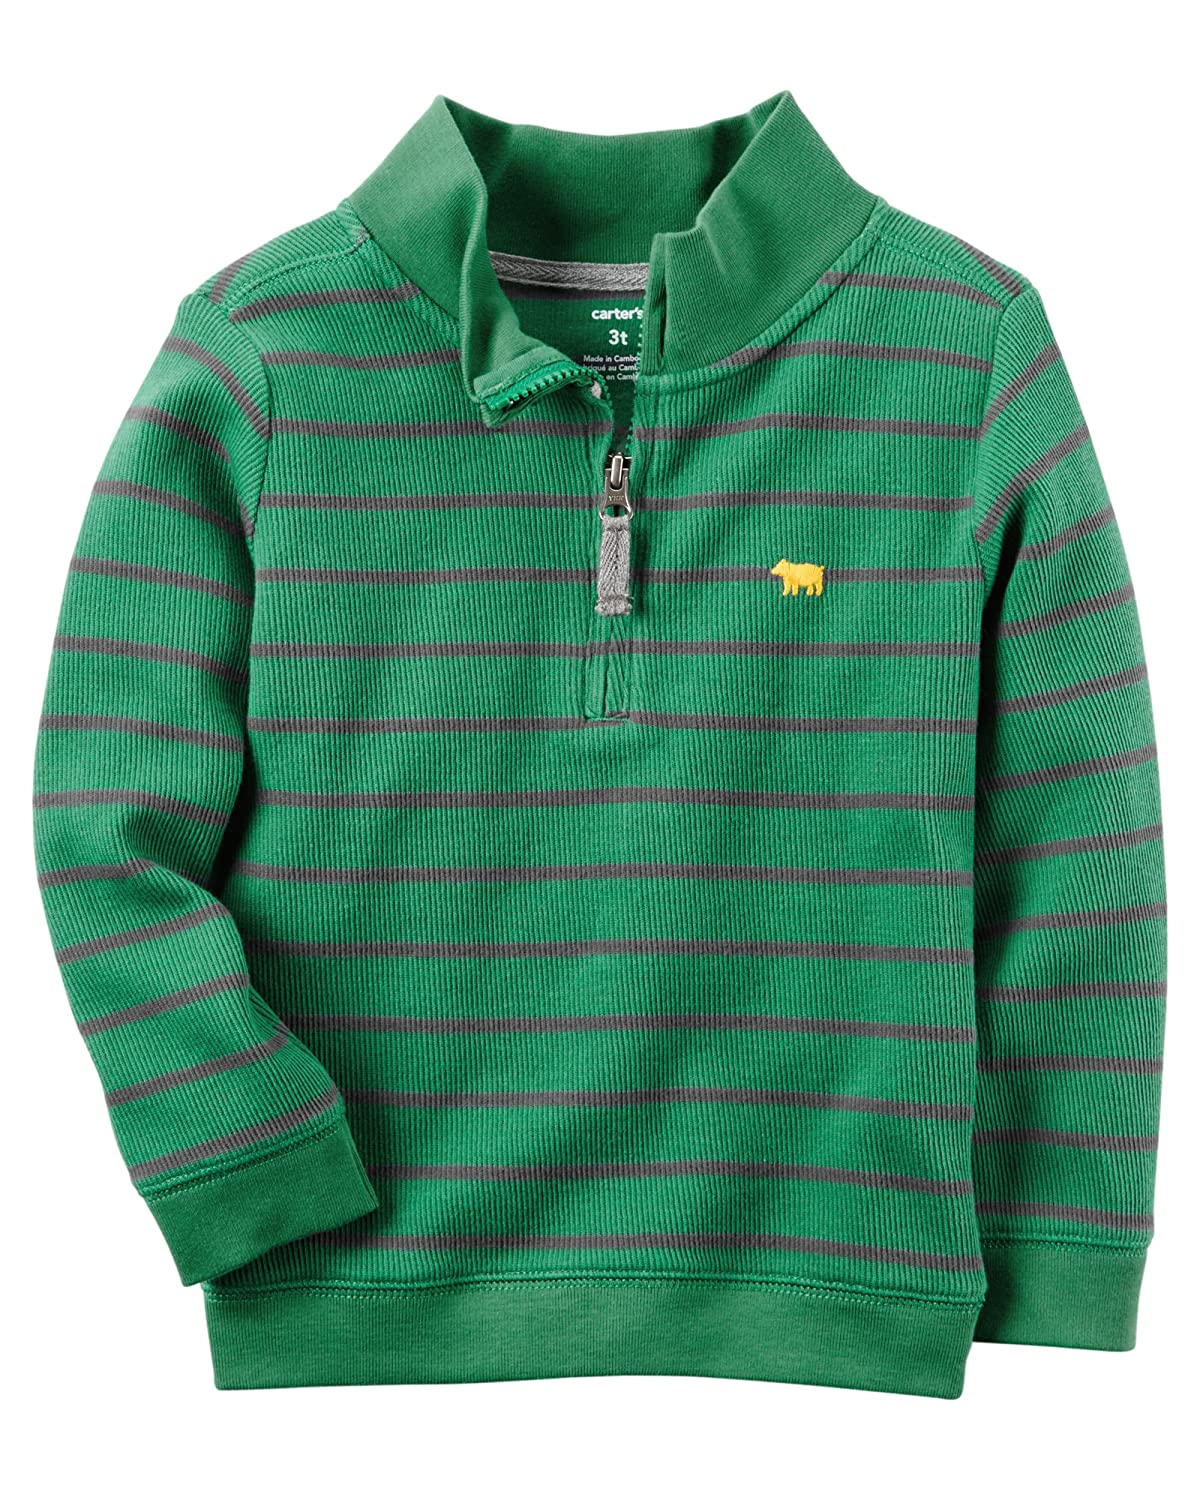 Carters Boys Half-Zip Striped Sweater Green//Grey,